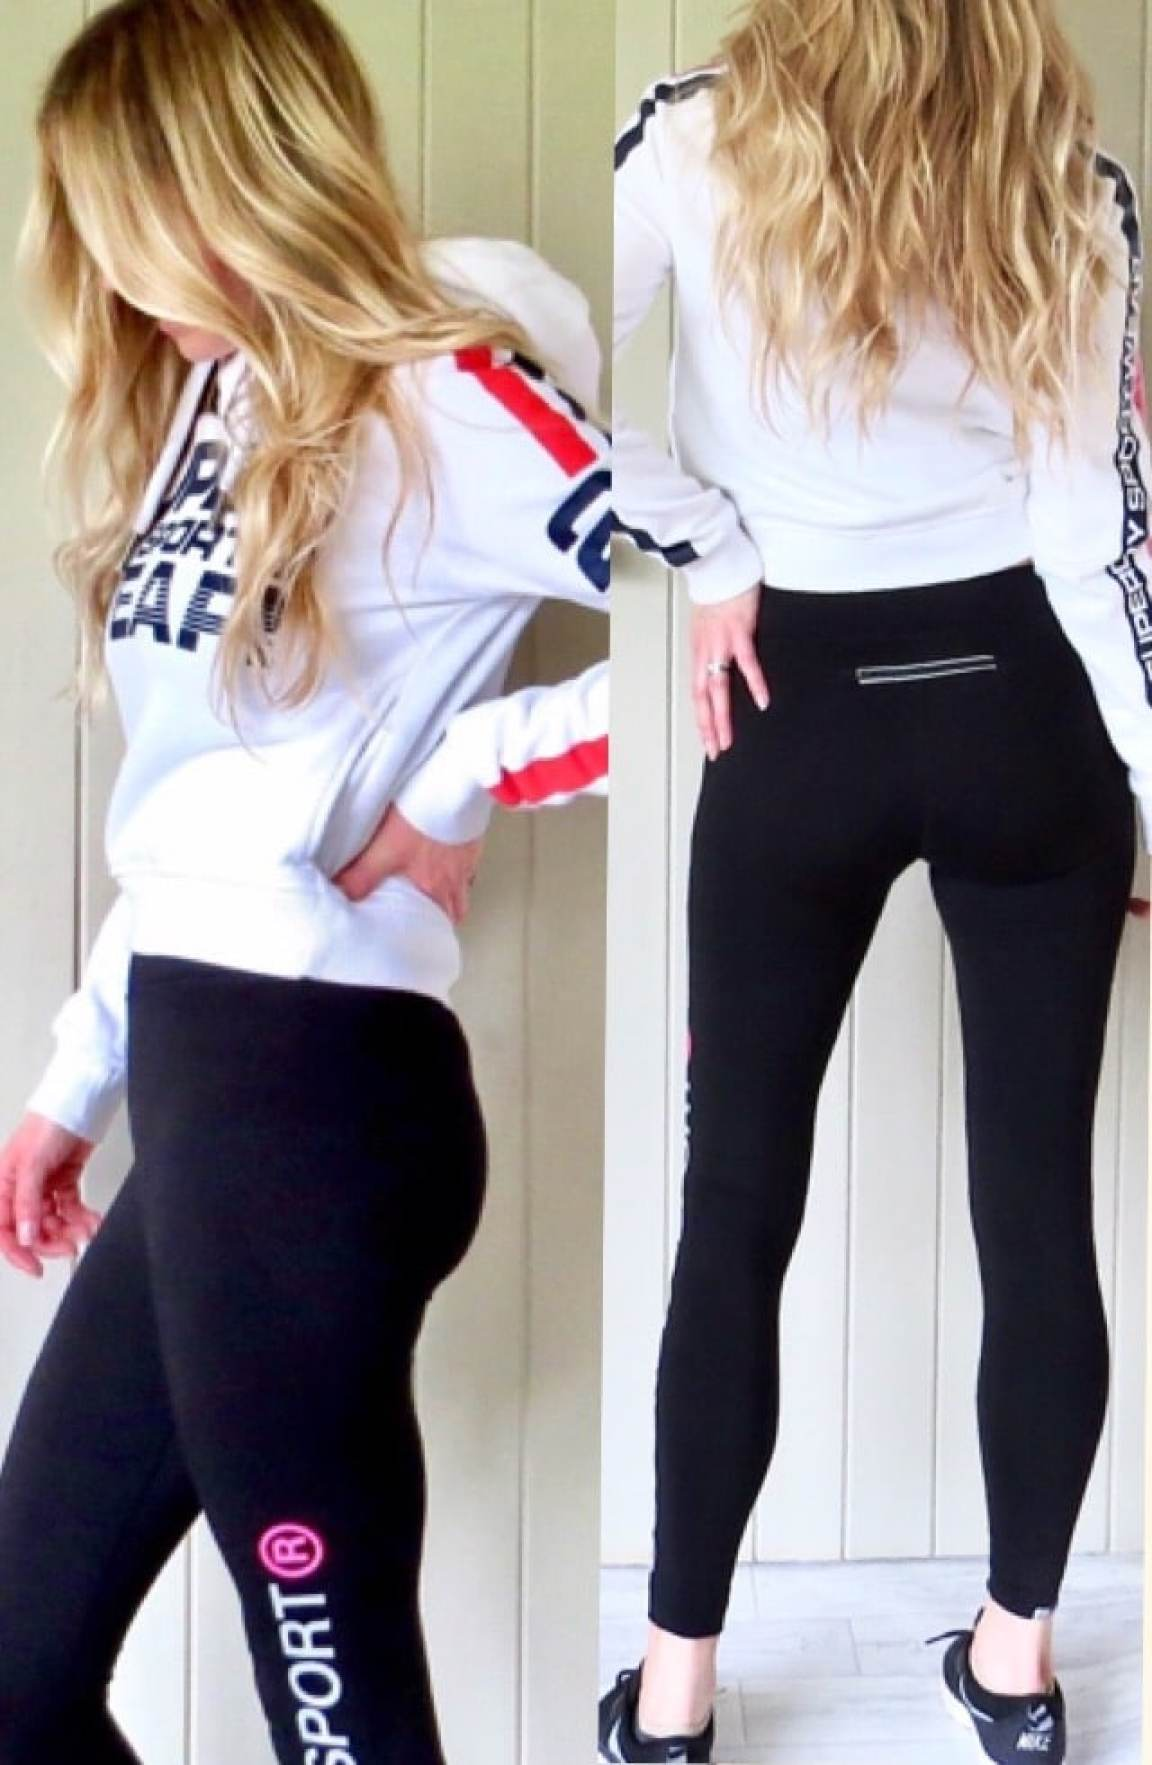 Samantha wearing the Superdry leggings